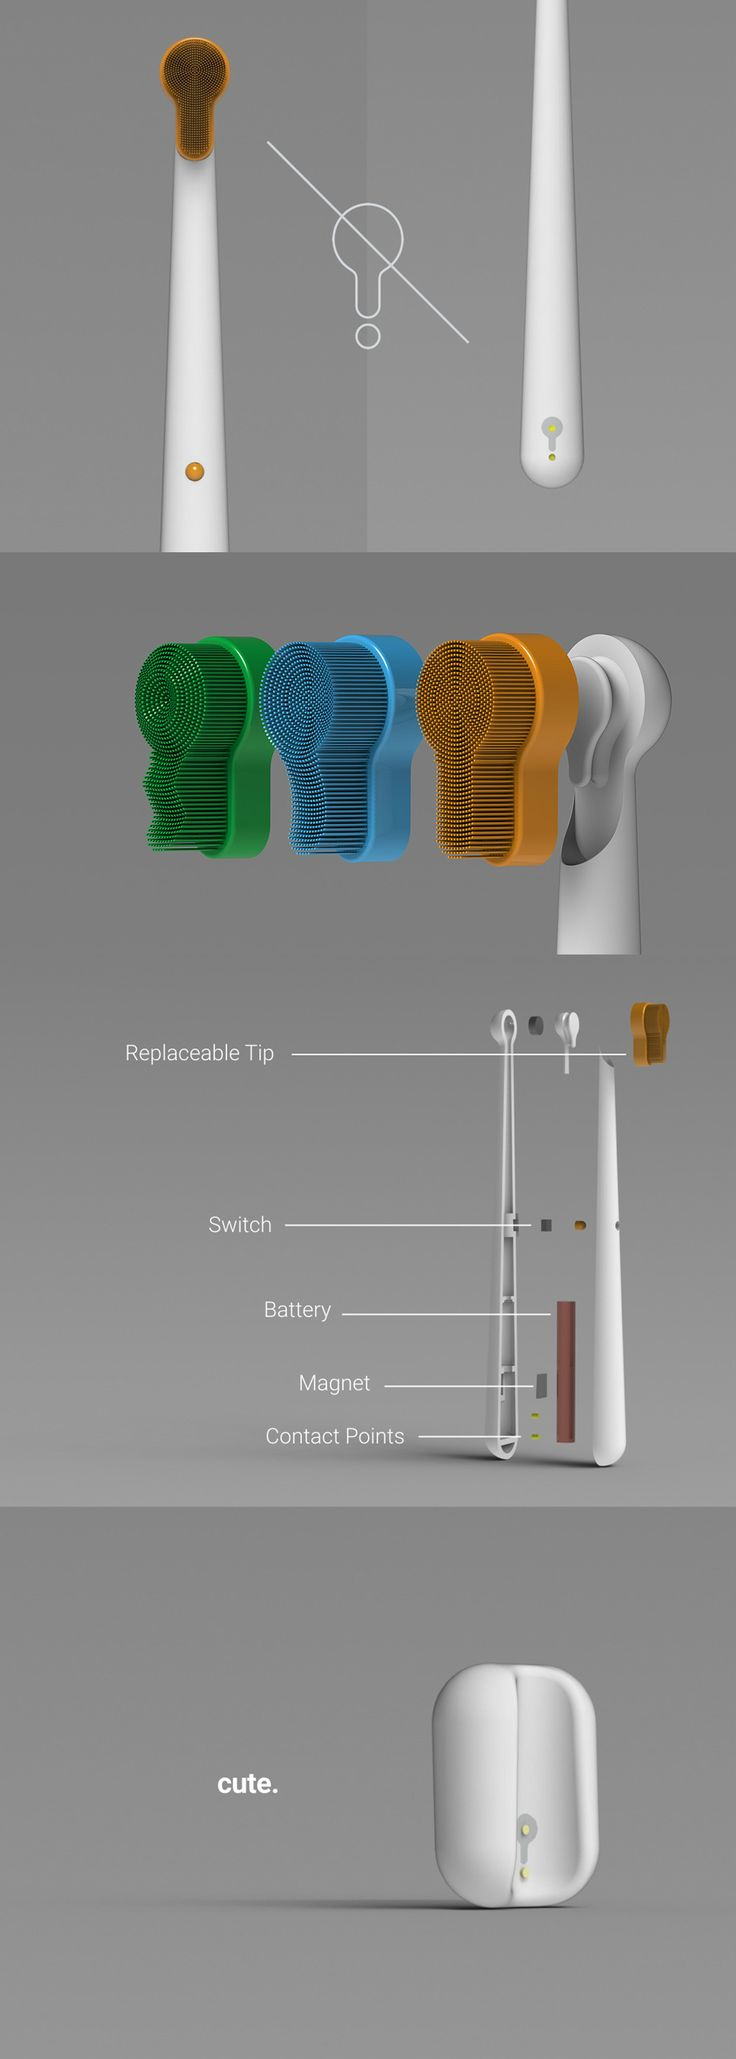 The Droplet project aims to redesigned the electric toothbrush to be just as easy to use as a non-electric one AND do as little harm as possible to the environment!